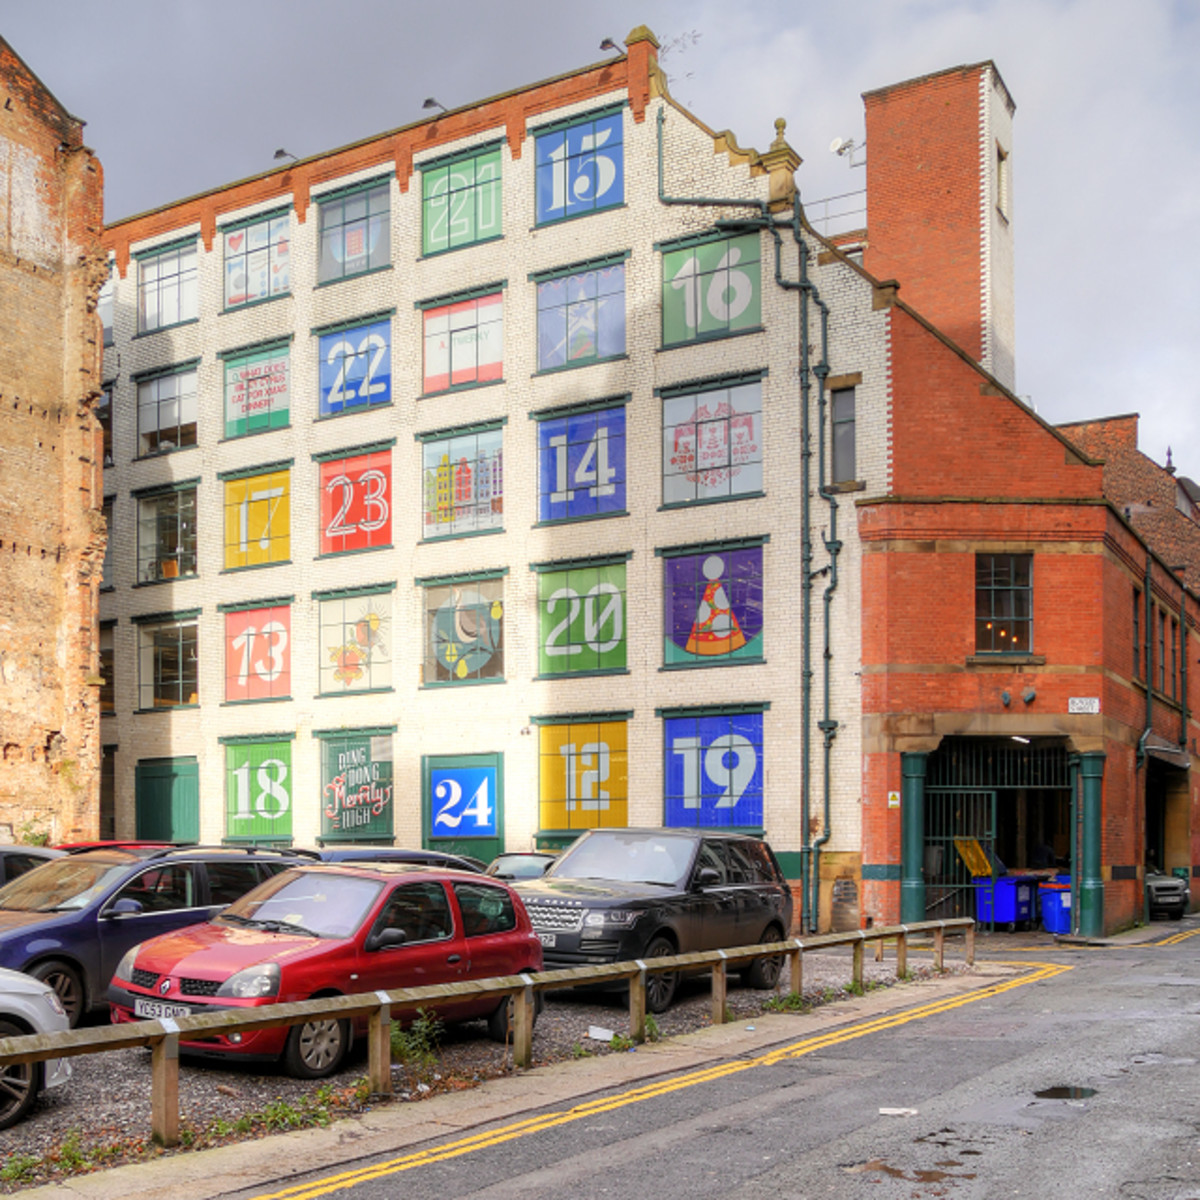 This building in Manchester, UK, turned its windows into a giant advent calendar for December.